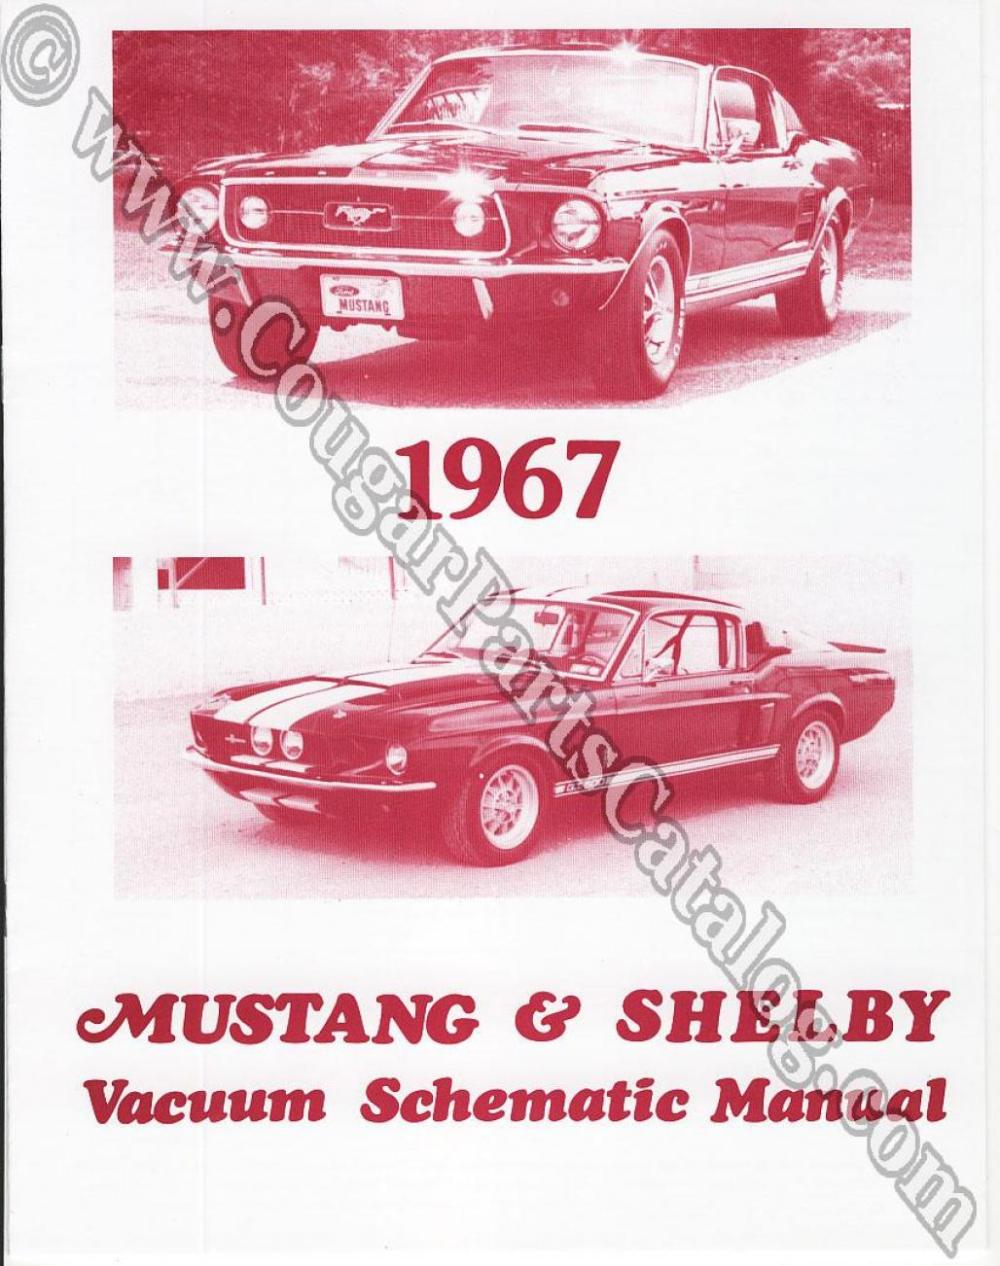 medium resolution of vacuum schematic manual repro 1967 mercury cougar 1967 ford mustang shelby